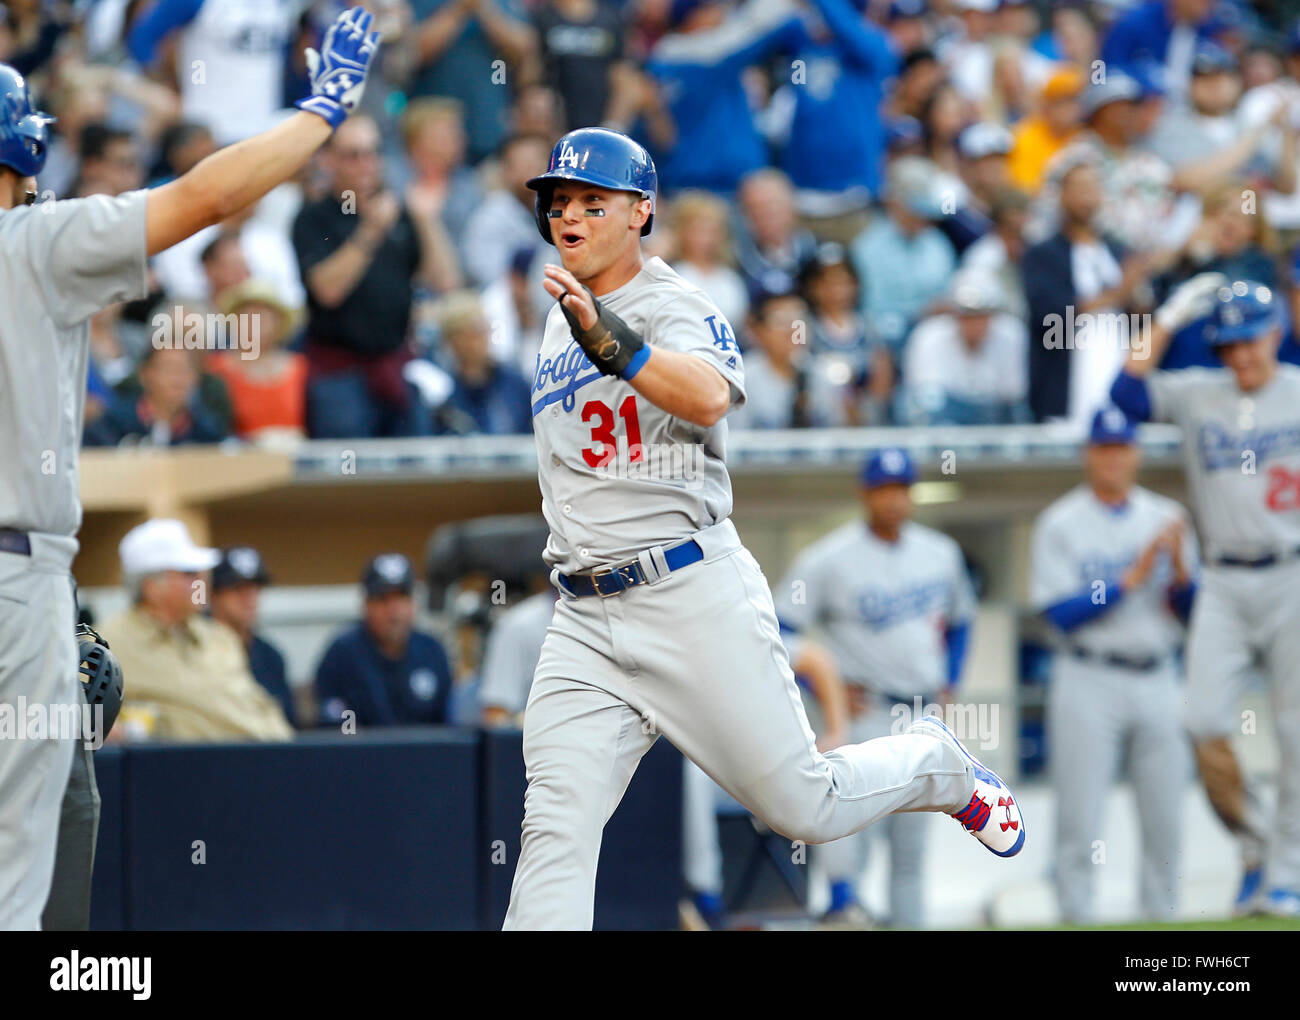 San Diego, CA, USA. 24th Mar, 2016. SAN DIEGO, CA - APRIL 4, 2015 - | Dodgers Joc Pederson scores on an A.J. Ellis - Stock Image